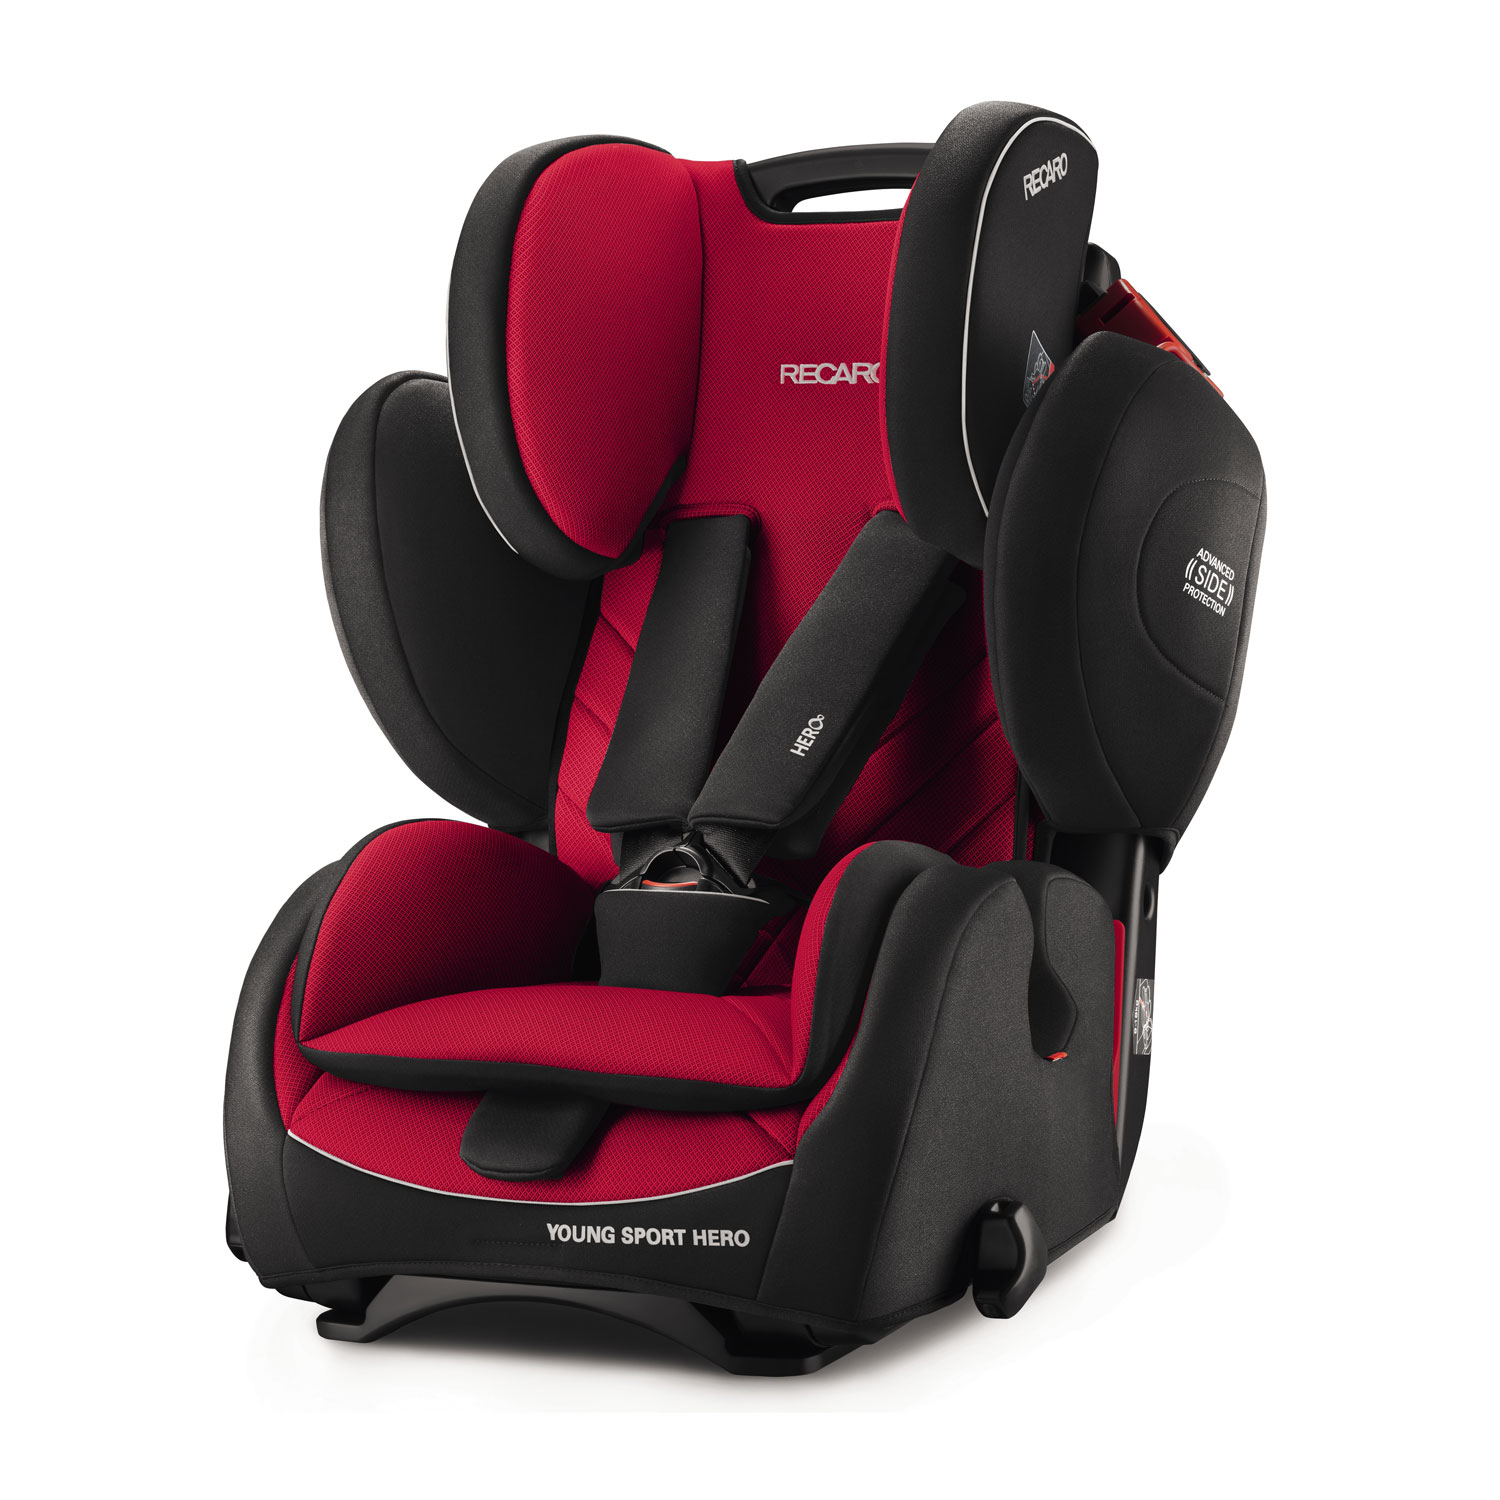 recaro young sport hero racing red auto kindersitze 9 36 kg racing red fahrzeugaufbau. Black Bedroom Furniture Sets. Home Design Ideas